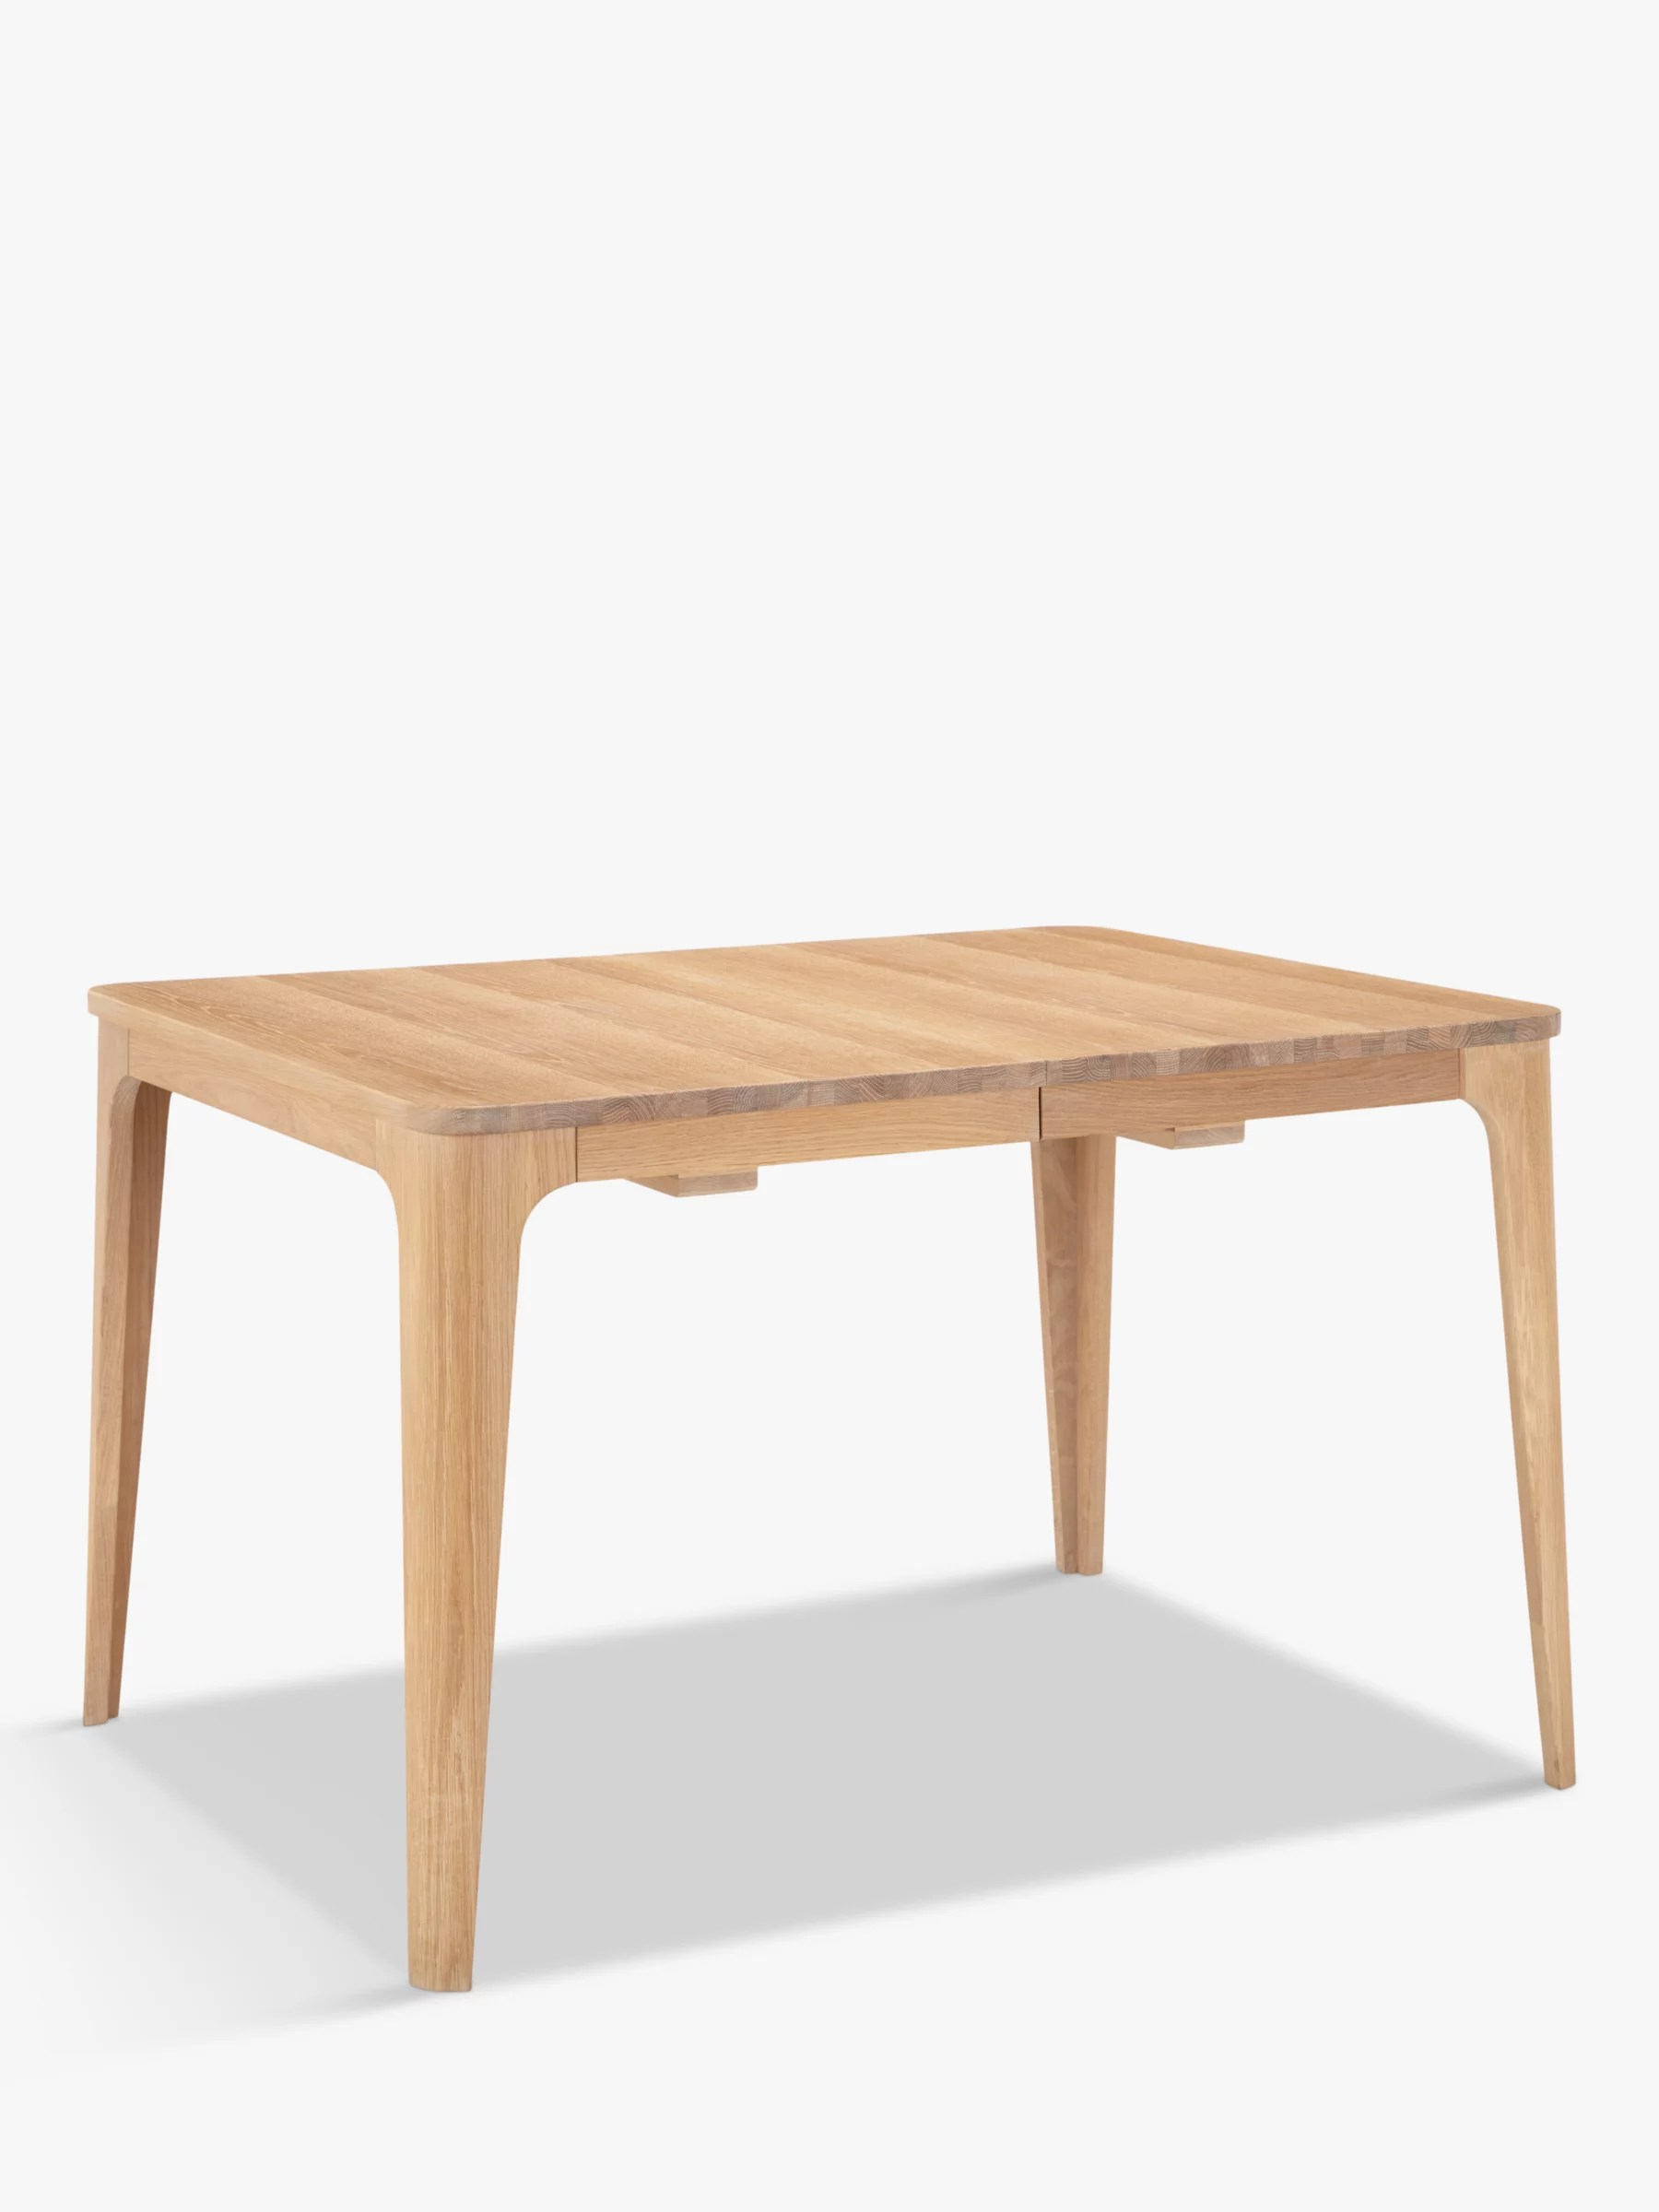 Extending Dining Table Ebbe Gehl For John Lewis Mira 4 8 Seater Extending Dining Table Natural